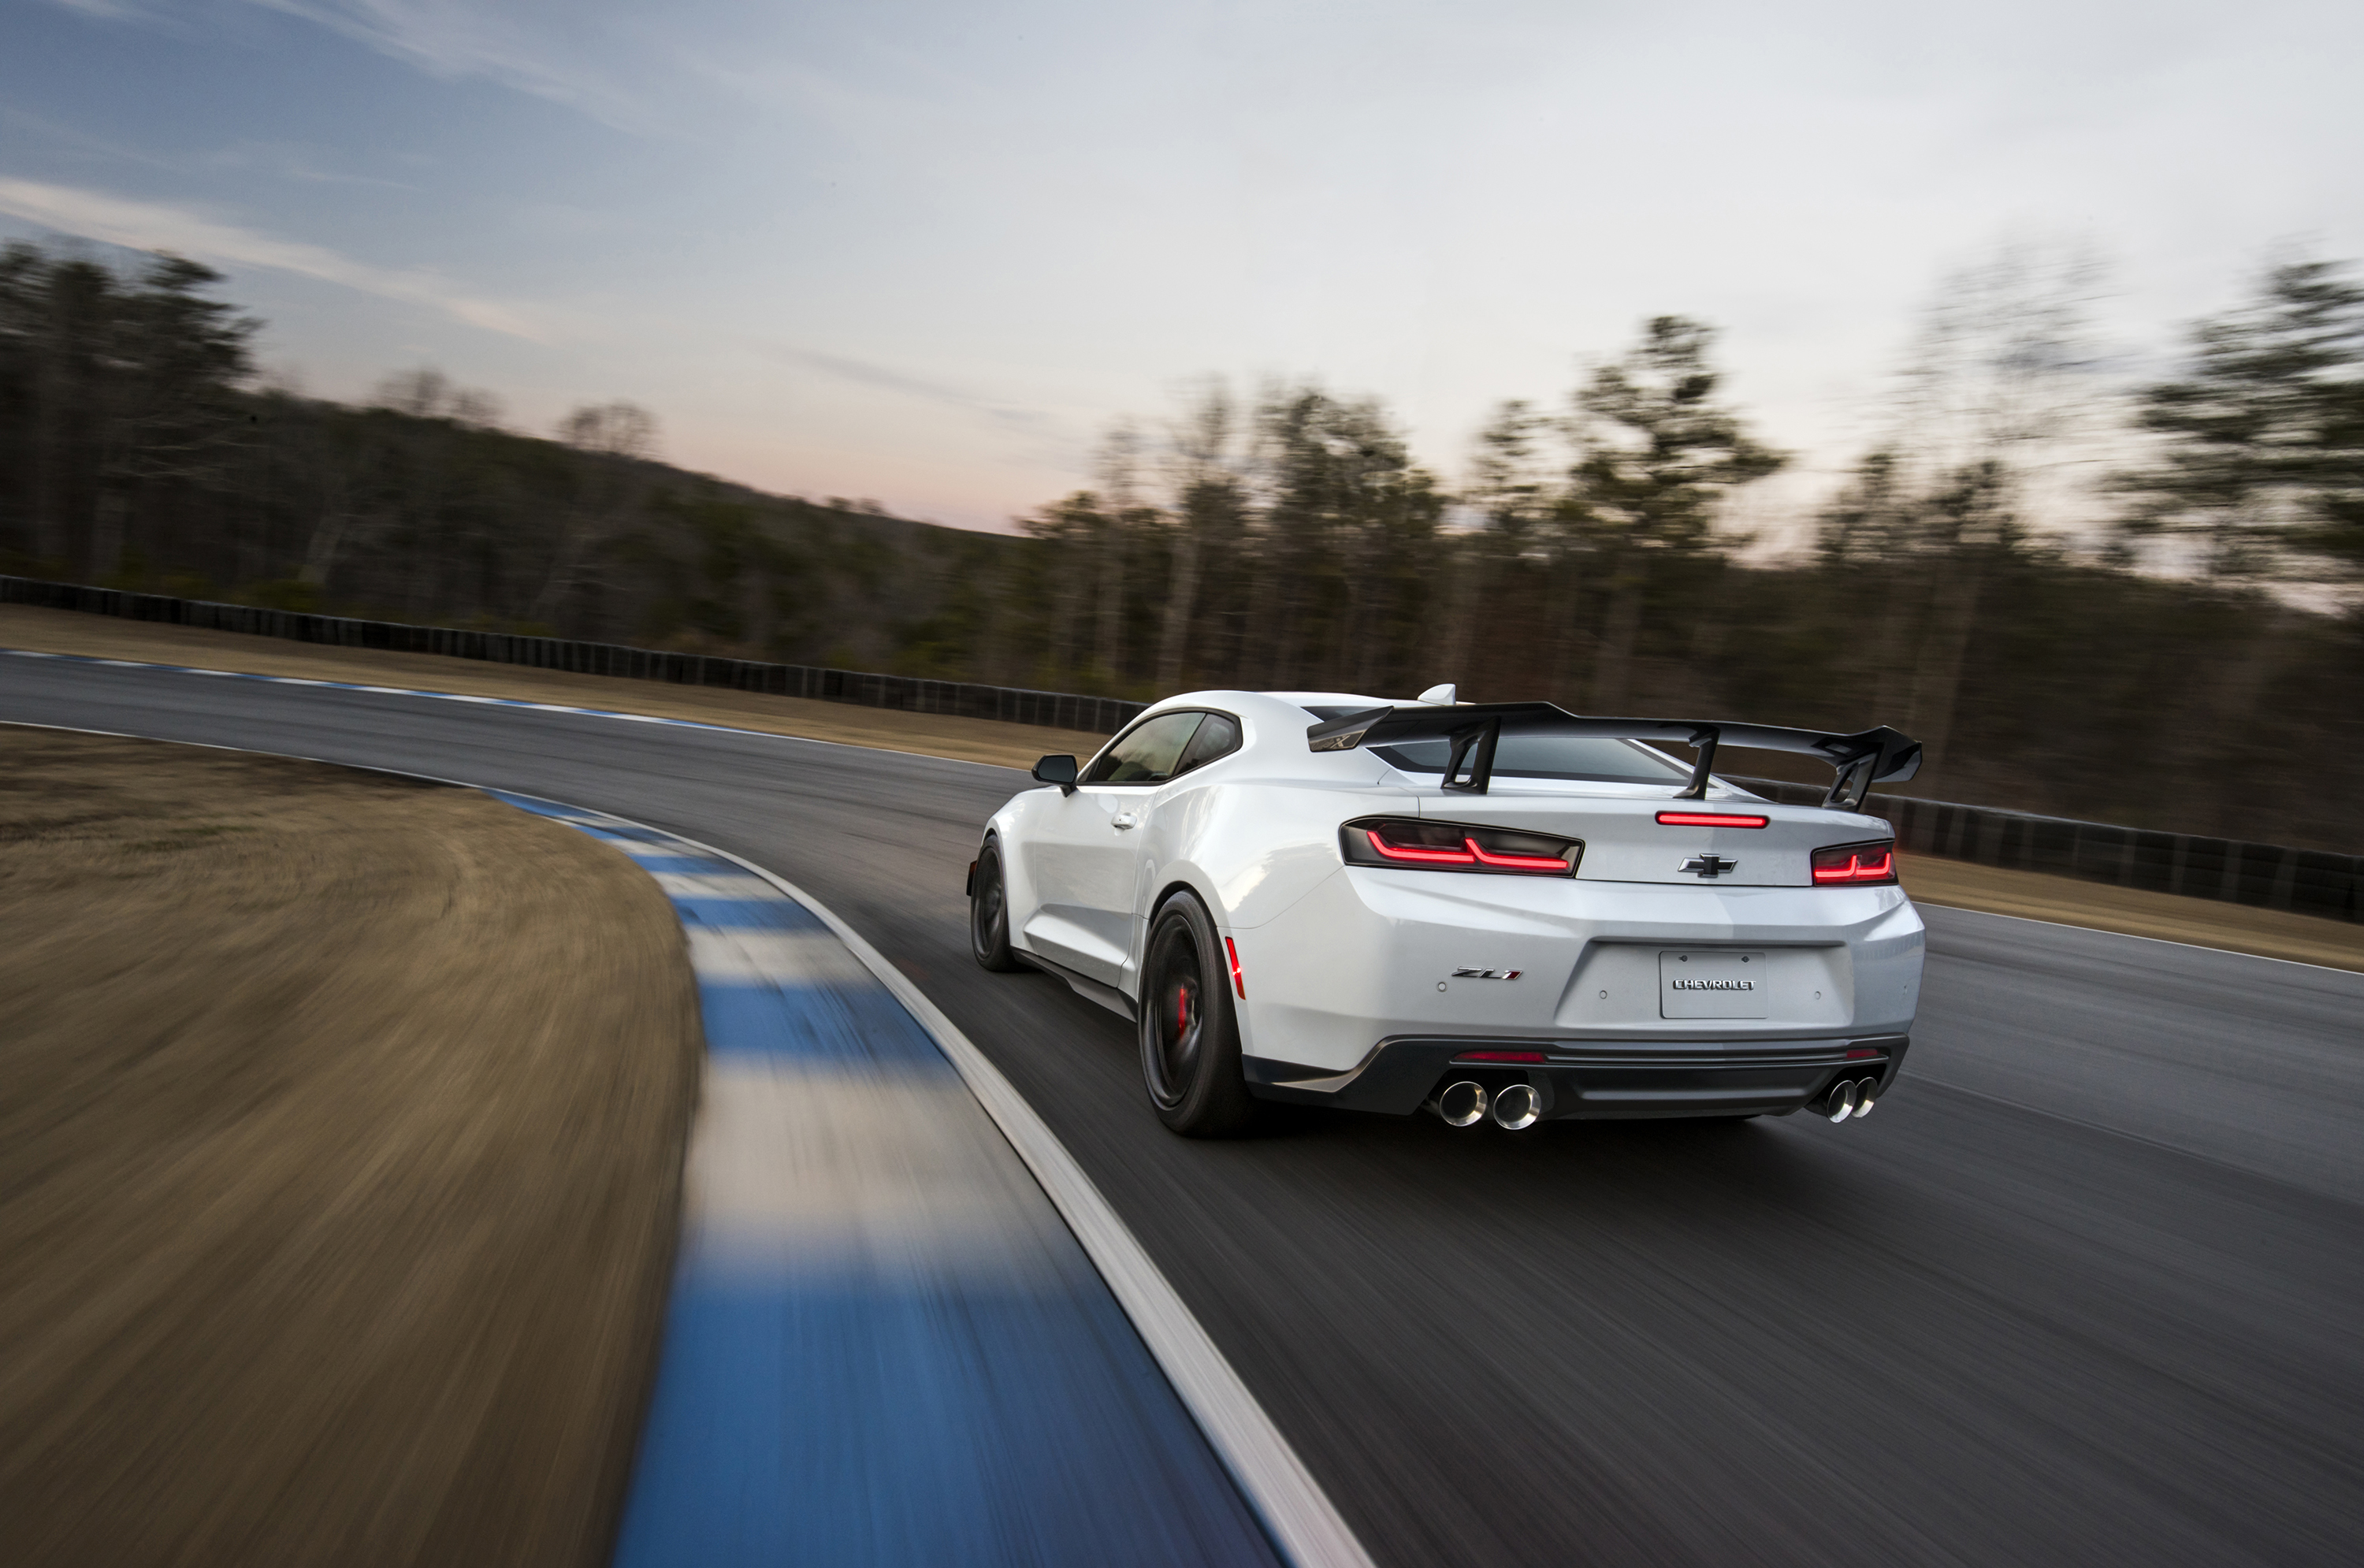 The Giant 2018 Chevrolet Camaro Zl1 1le Photo Gallery The Drive